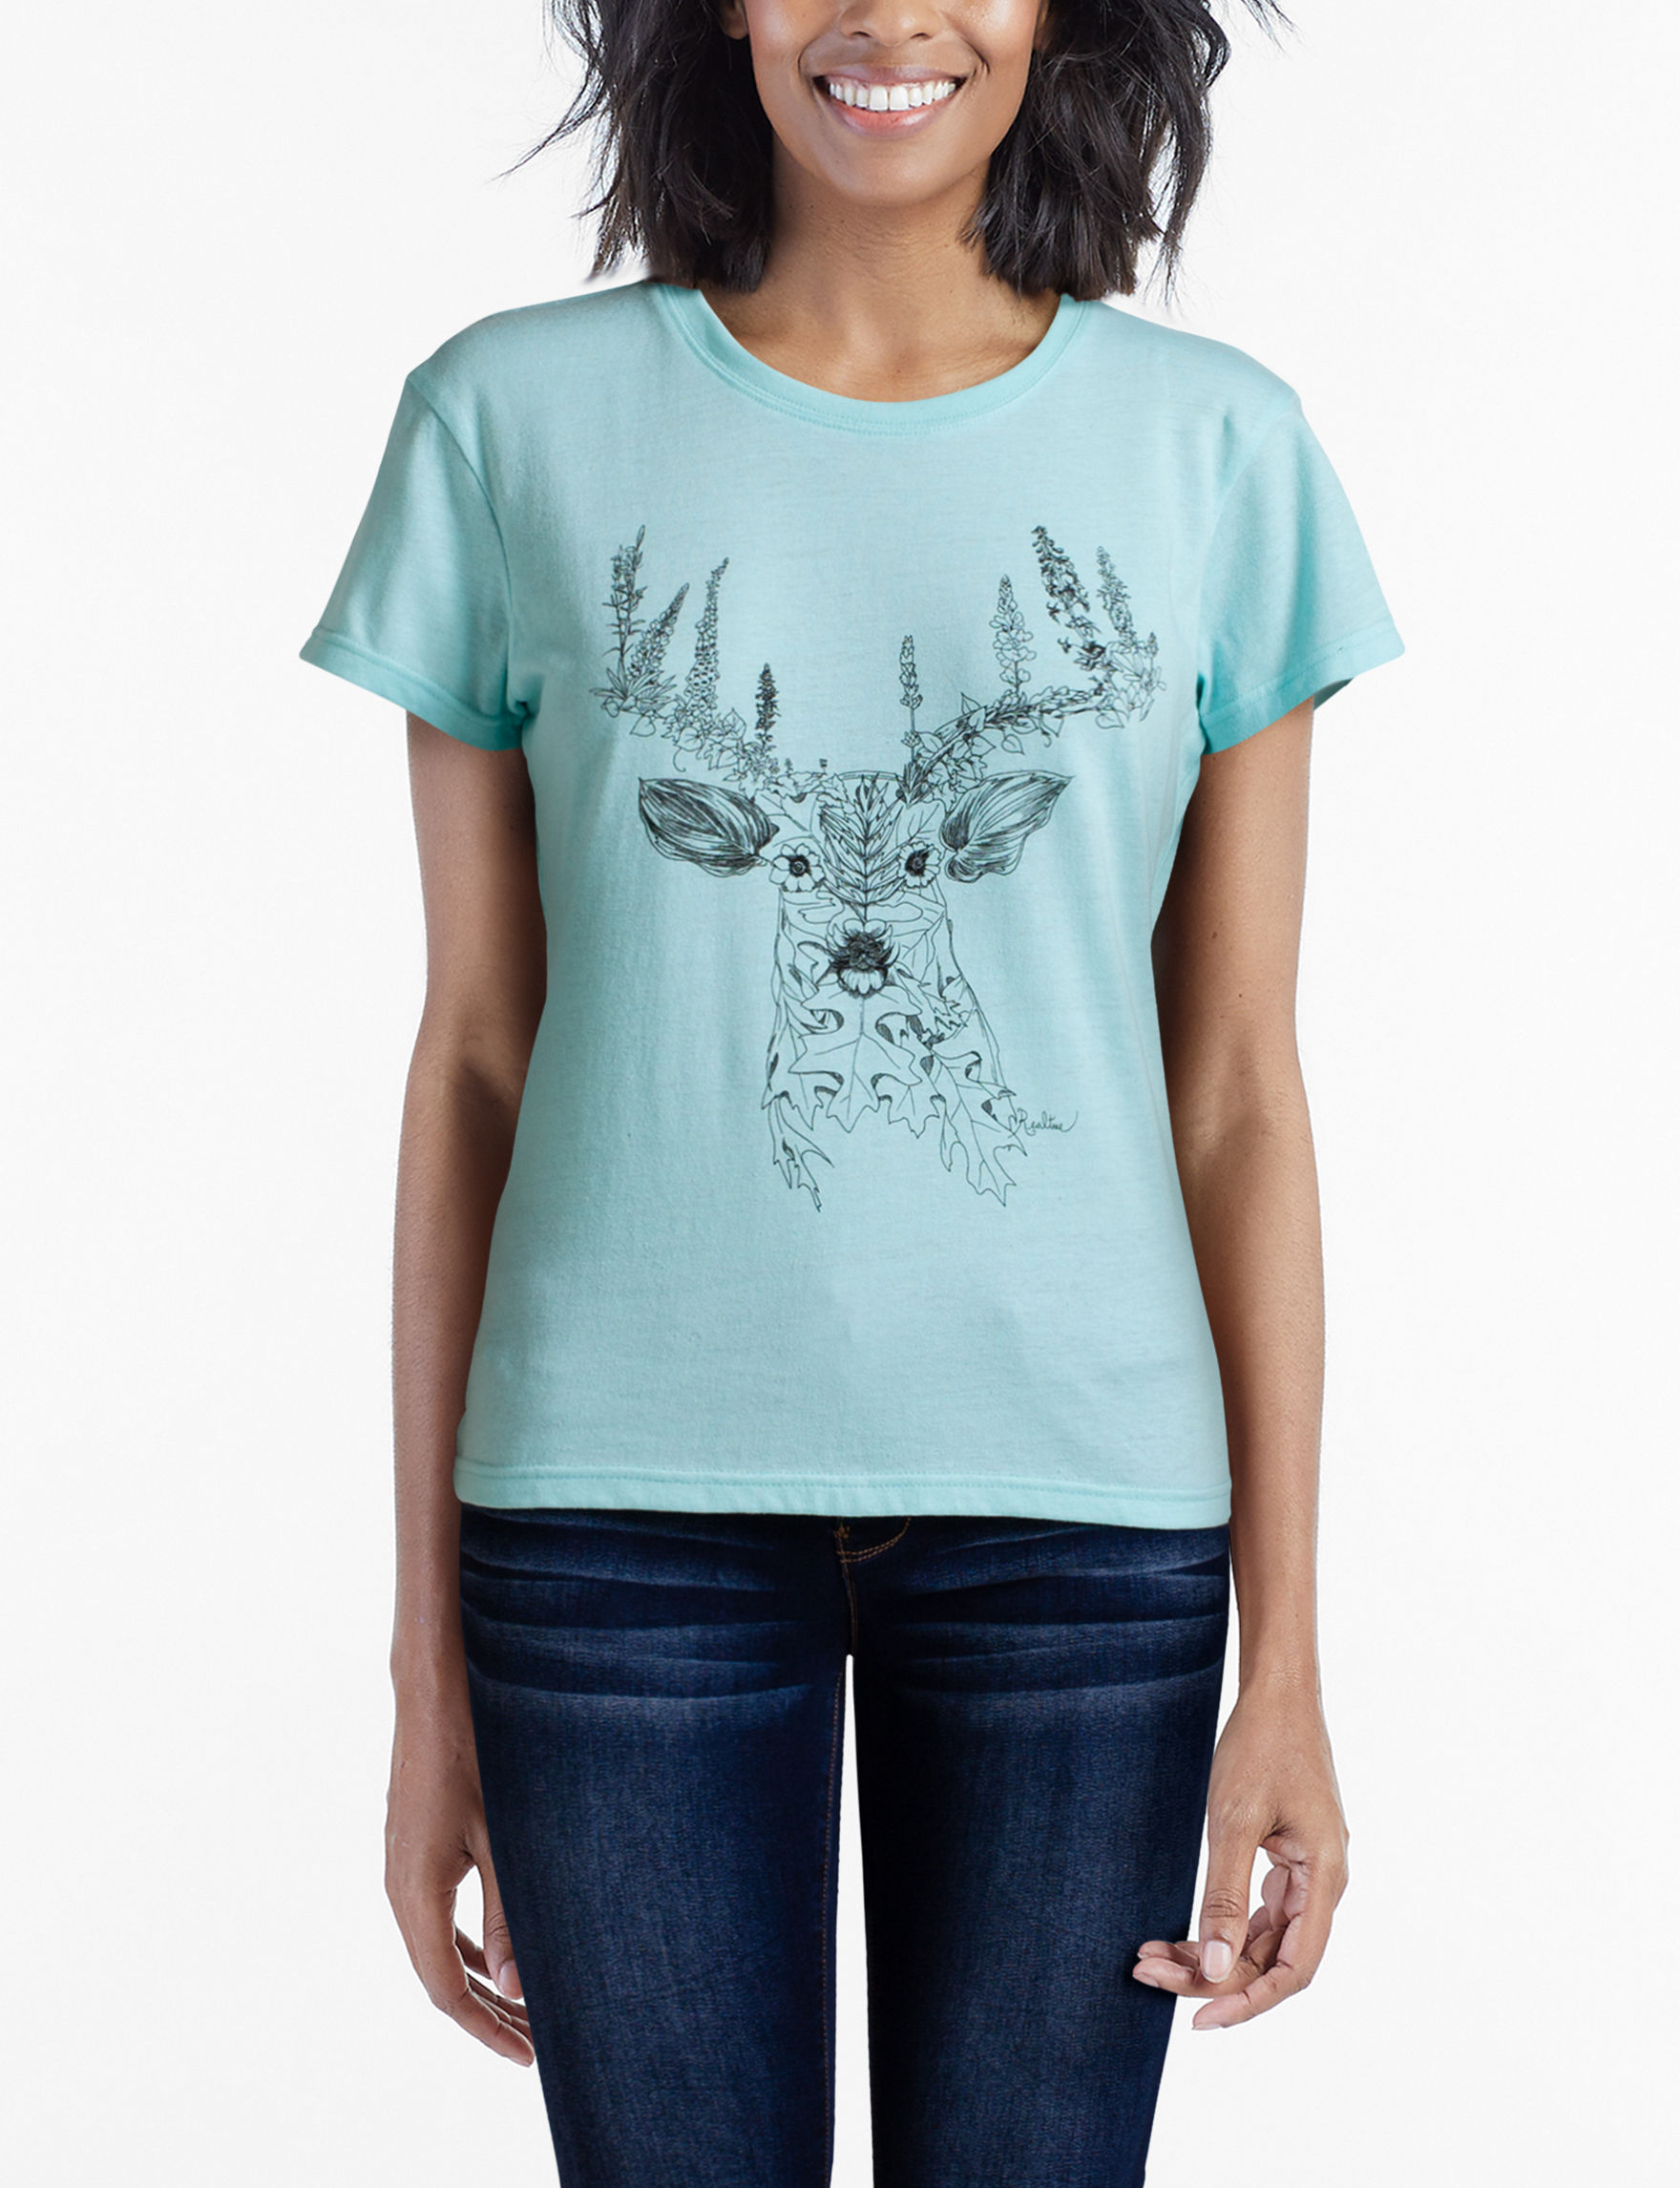 Realtree Aqua Tees & Tanks